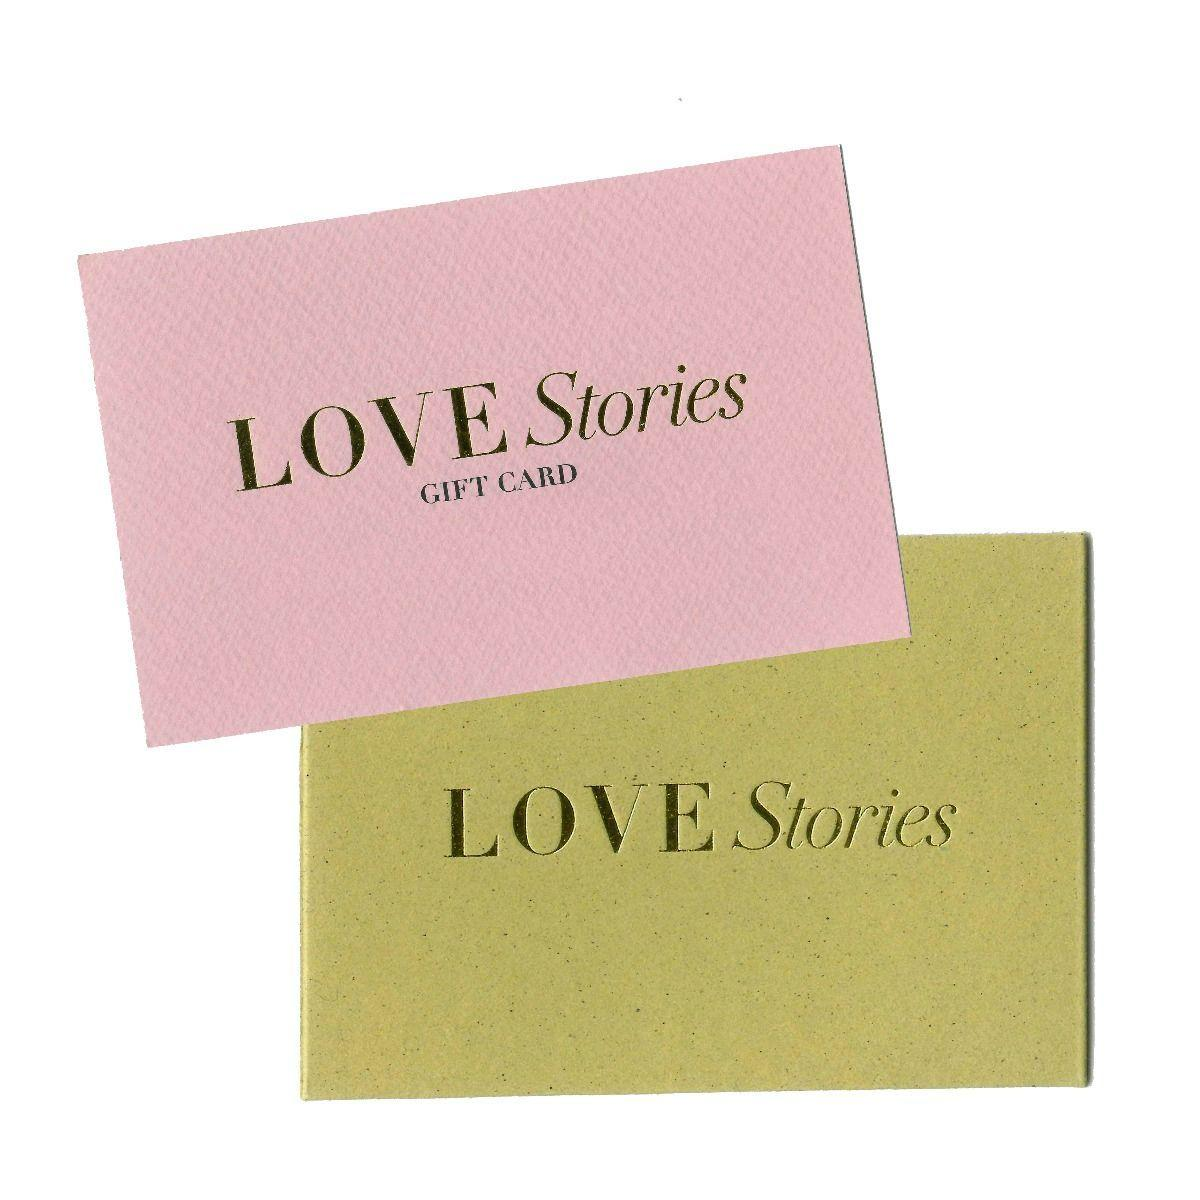 Love stories Love Stories Giftcard